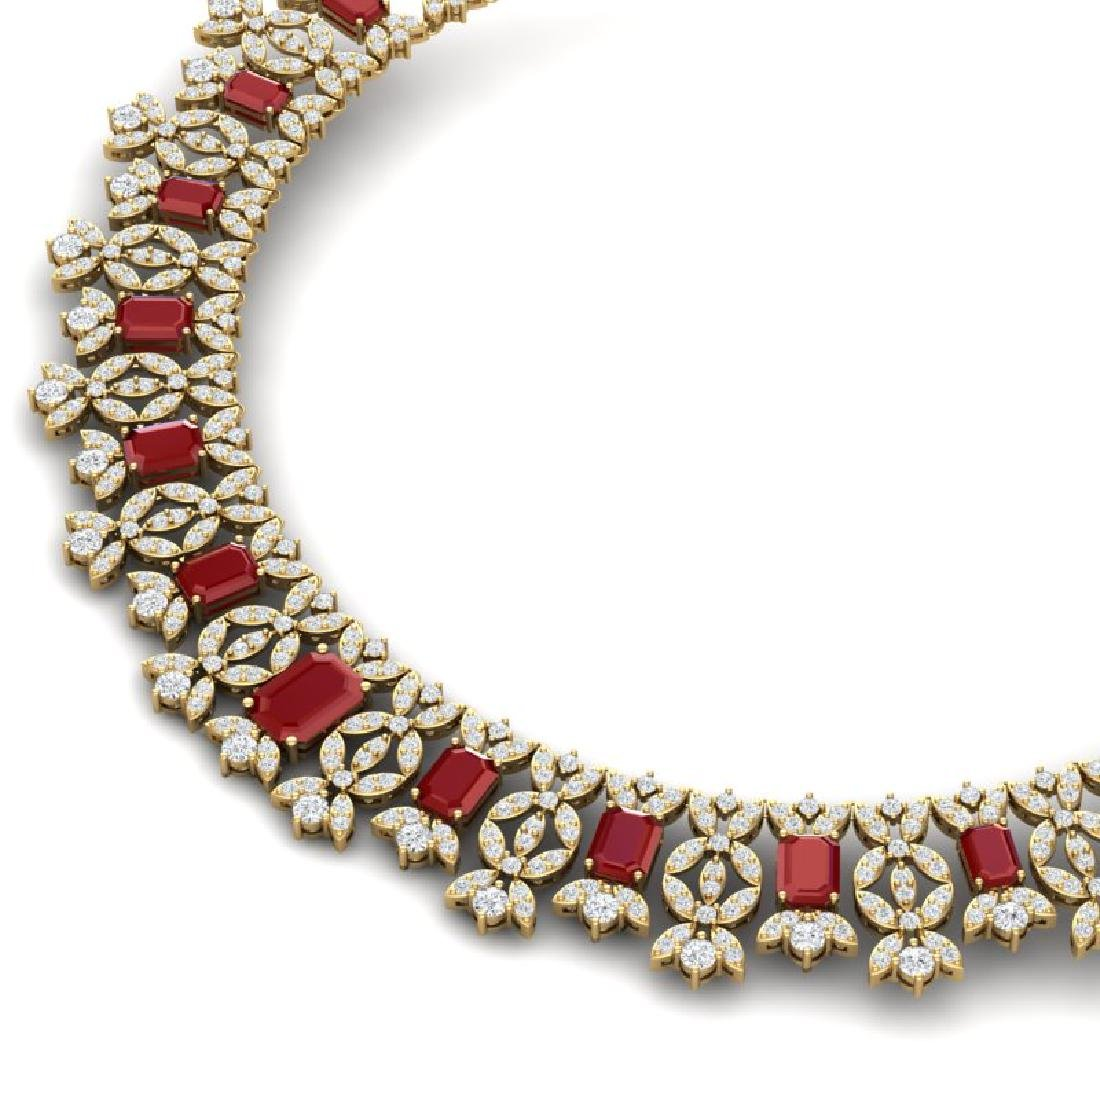 50.44 CTW Royalty Ruby & VS Diamond Necklace 18K Yellow